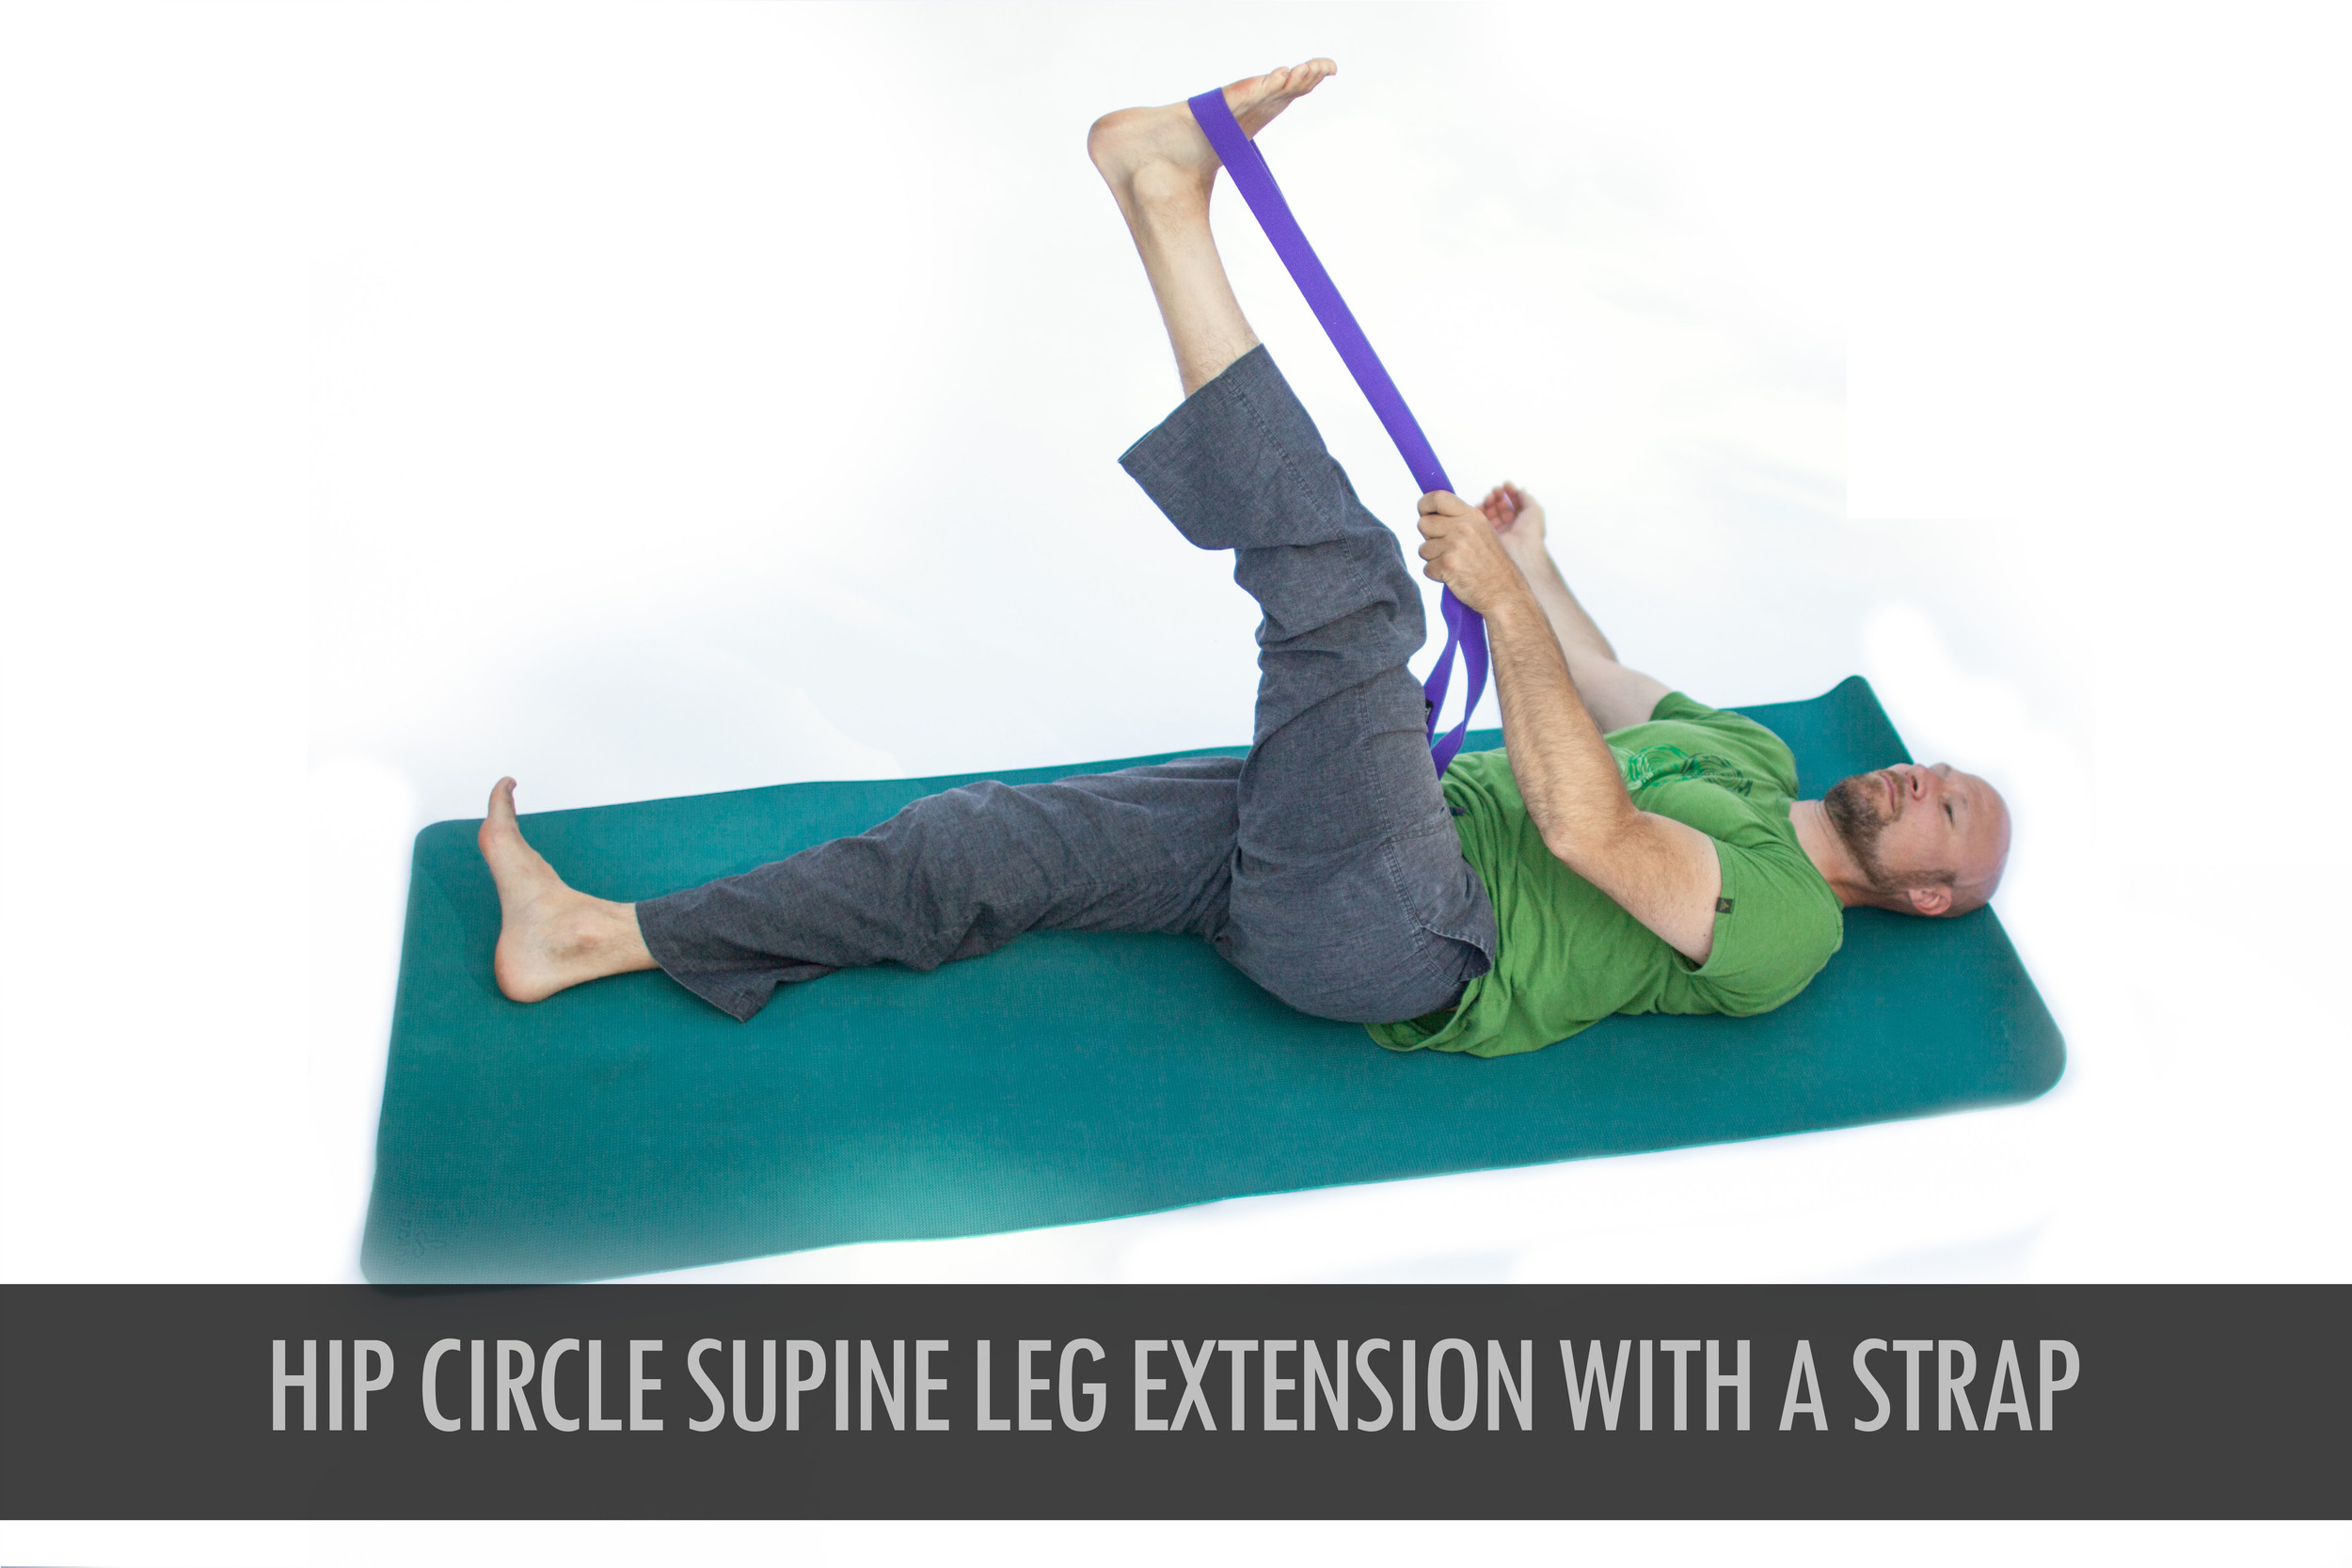 Hip Circle Supine Leg Extension With A Strap.jpg